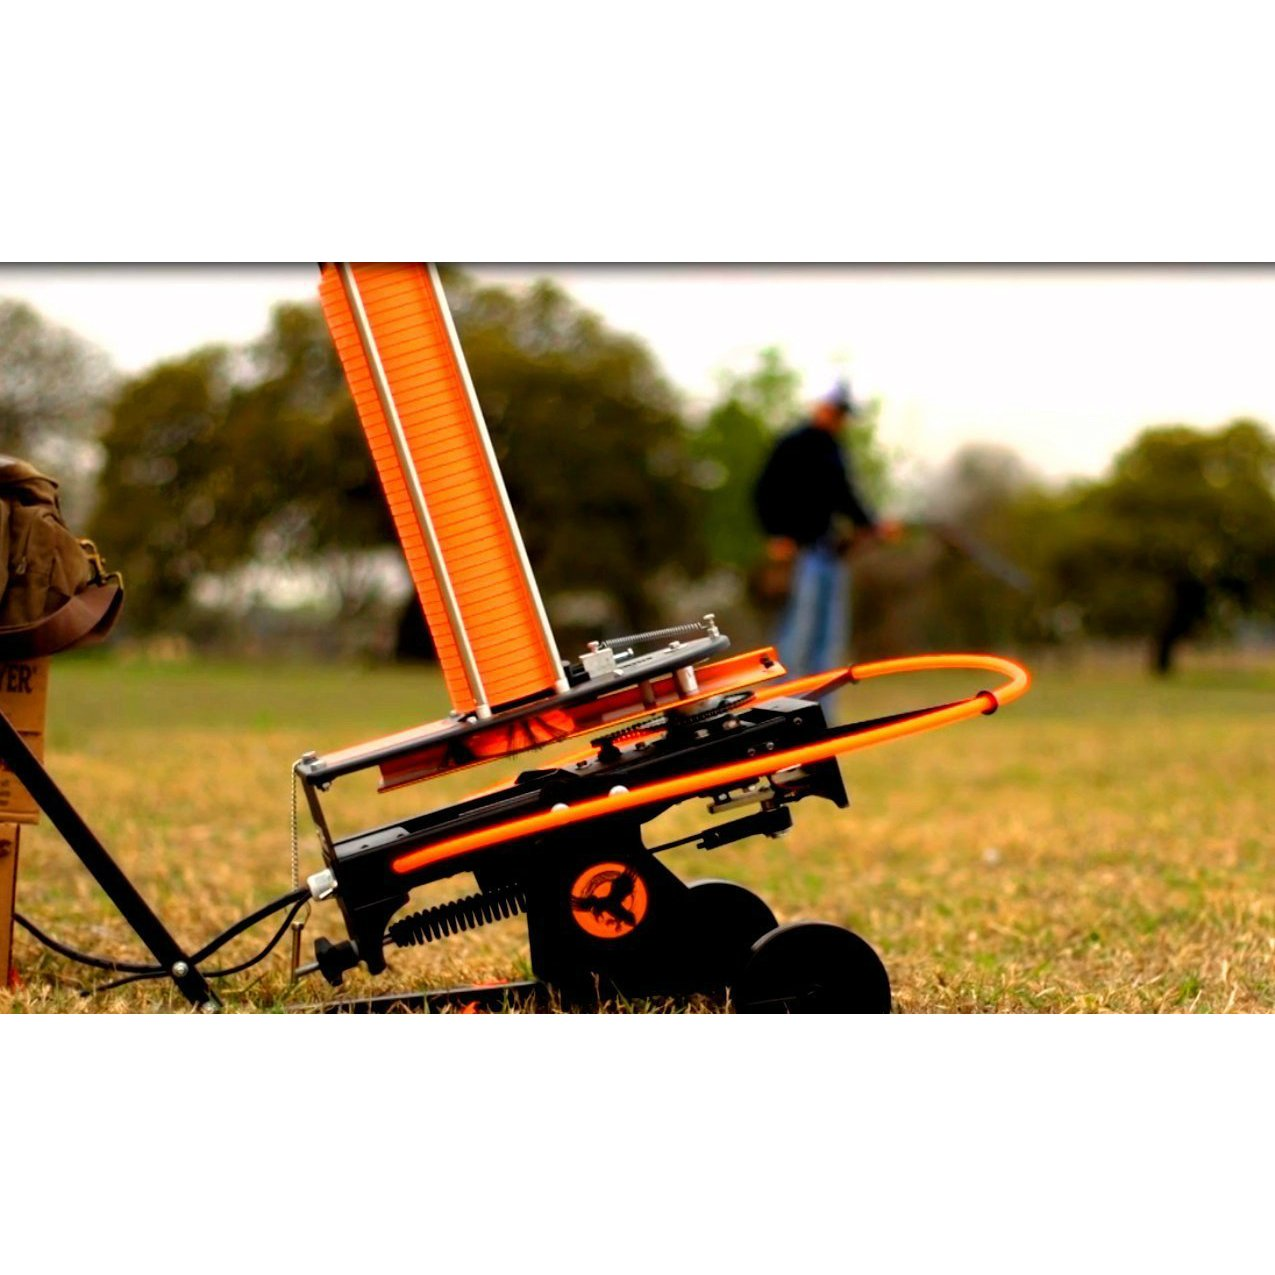 Do-All Outdoors Raven Automatic Clay Pigeon Skeet Thrower with Wheels, 50 Clay Capacity by Do-All Outdoors (Image #3)